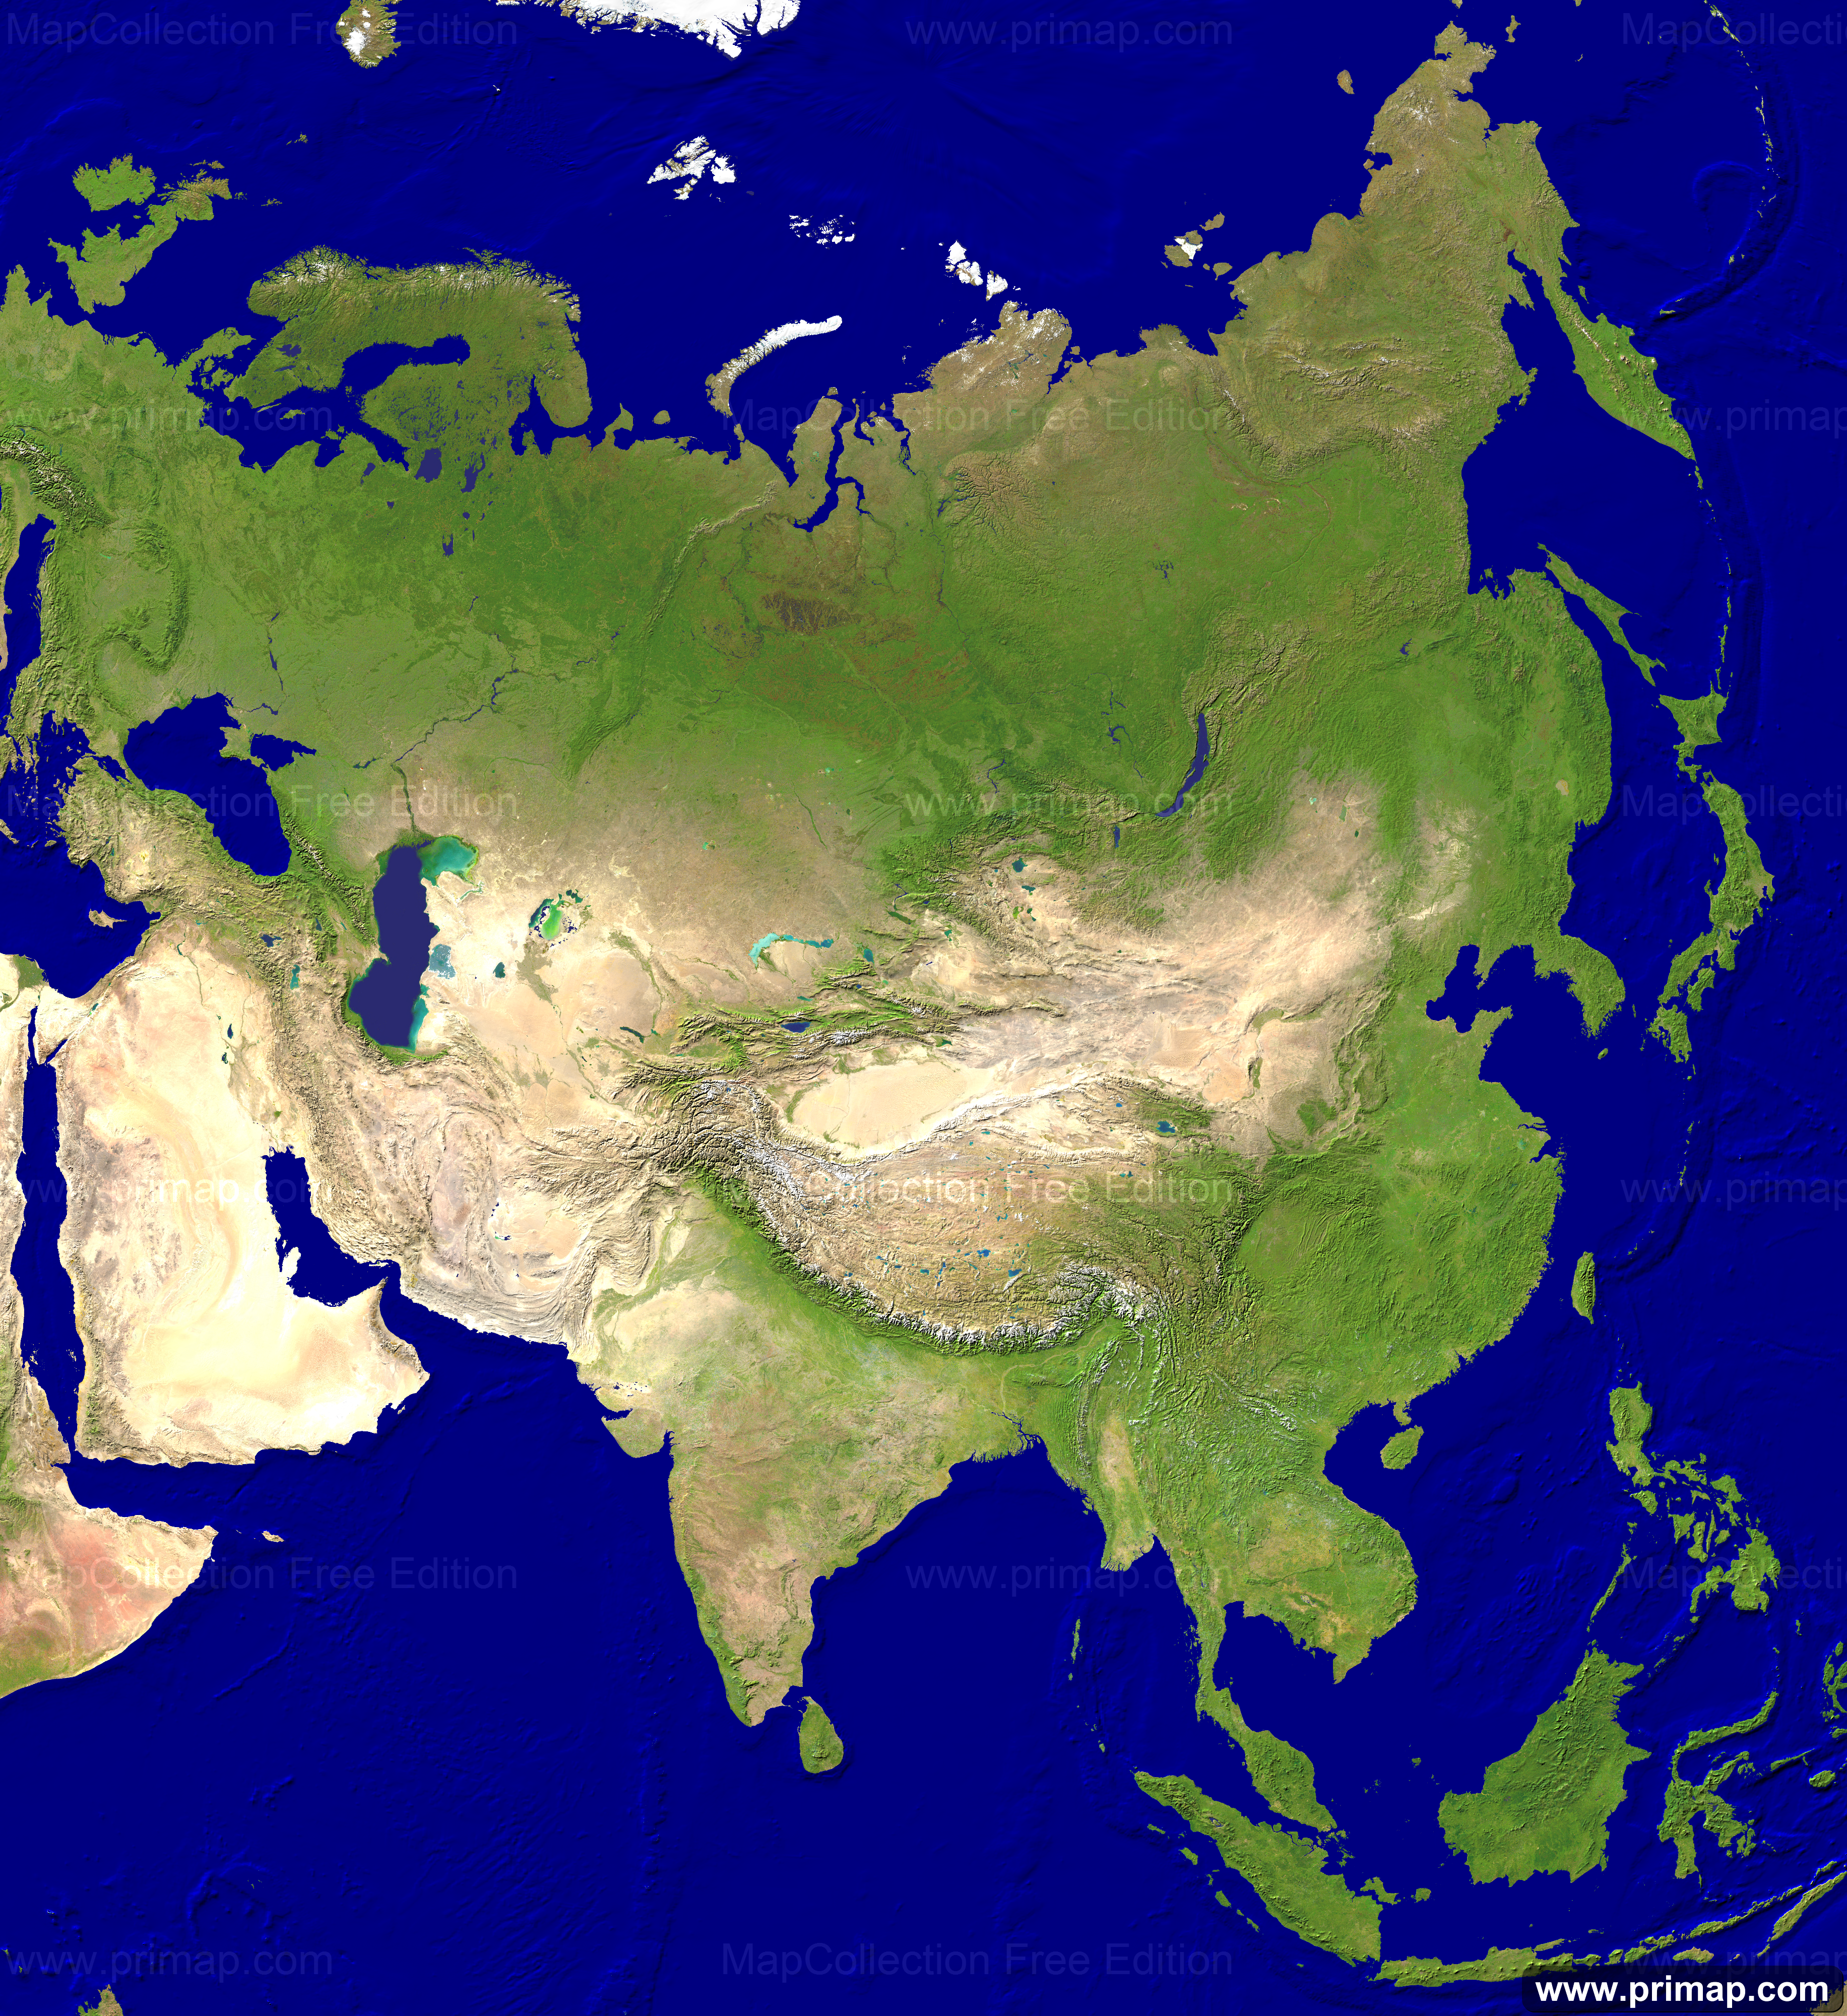 Map Asia Satellite XPNG Geography - World map by satellite